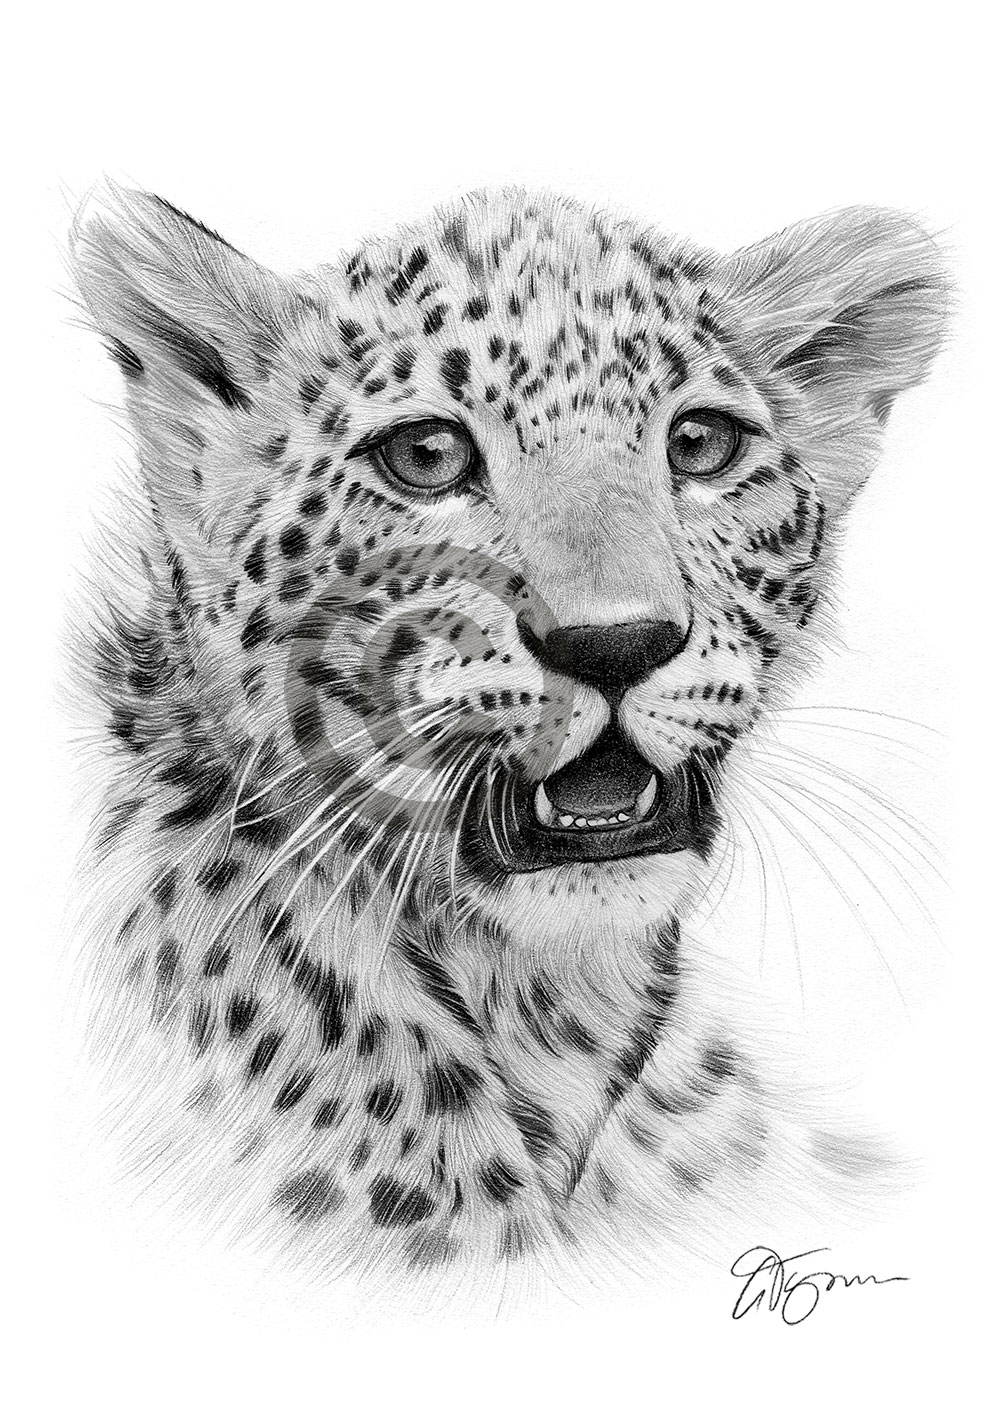 Cheetah cub pencil drawing by artist Gary Tymon